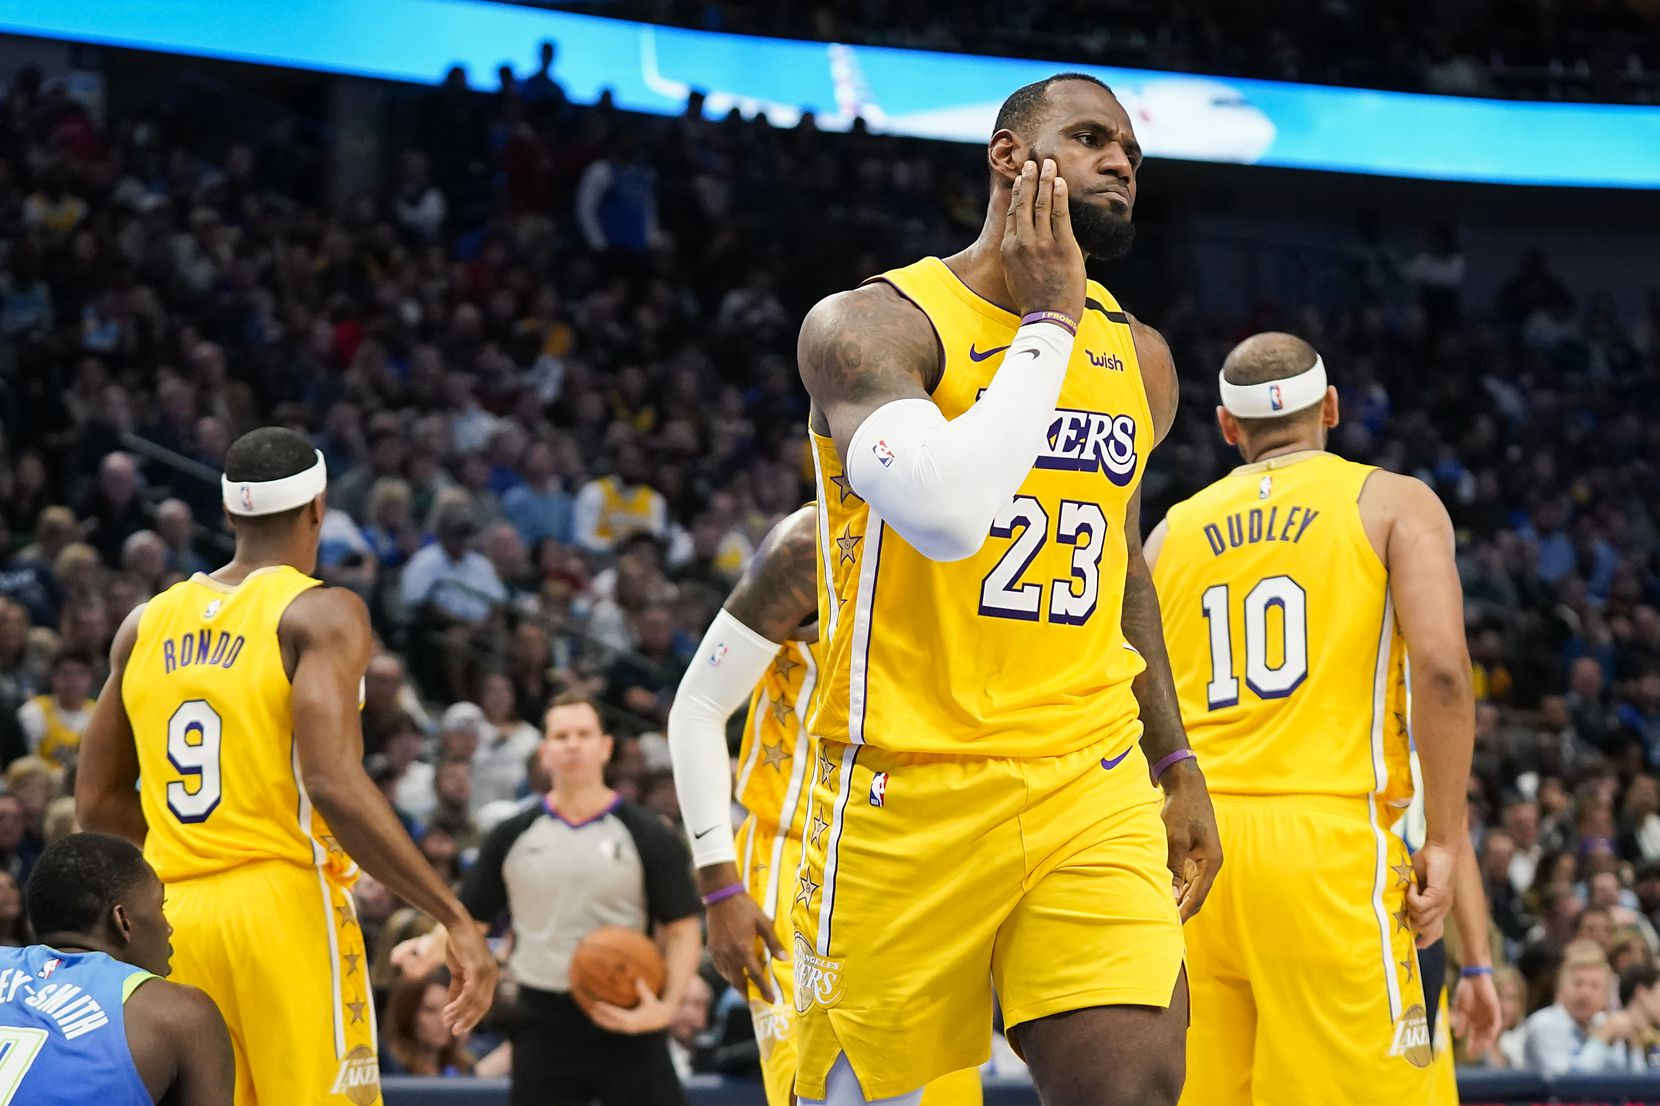 Los Angeles Lakers forward LeBron James reacts after being fouled during the second half of an NBA basketball game against the Dallas Mavericks at American Airlines Center on Friday, Jan. 10, 2020, in Dallas.